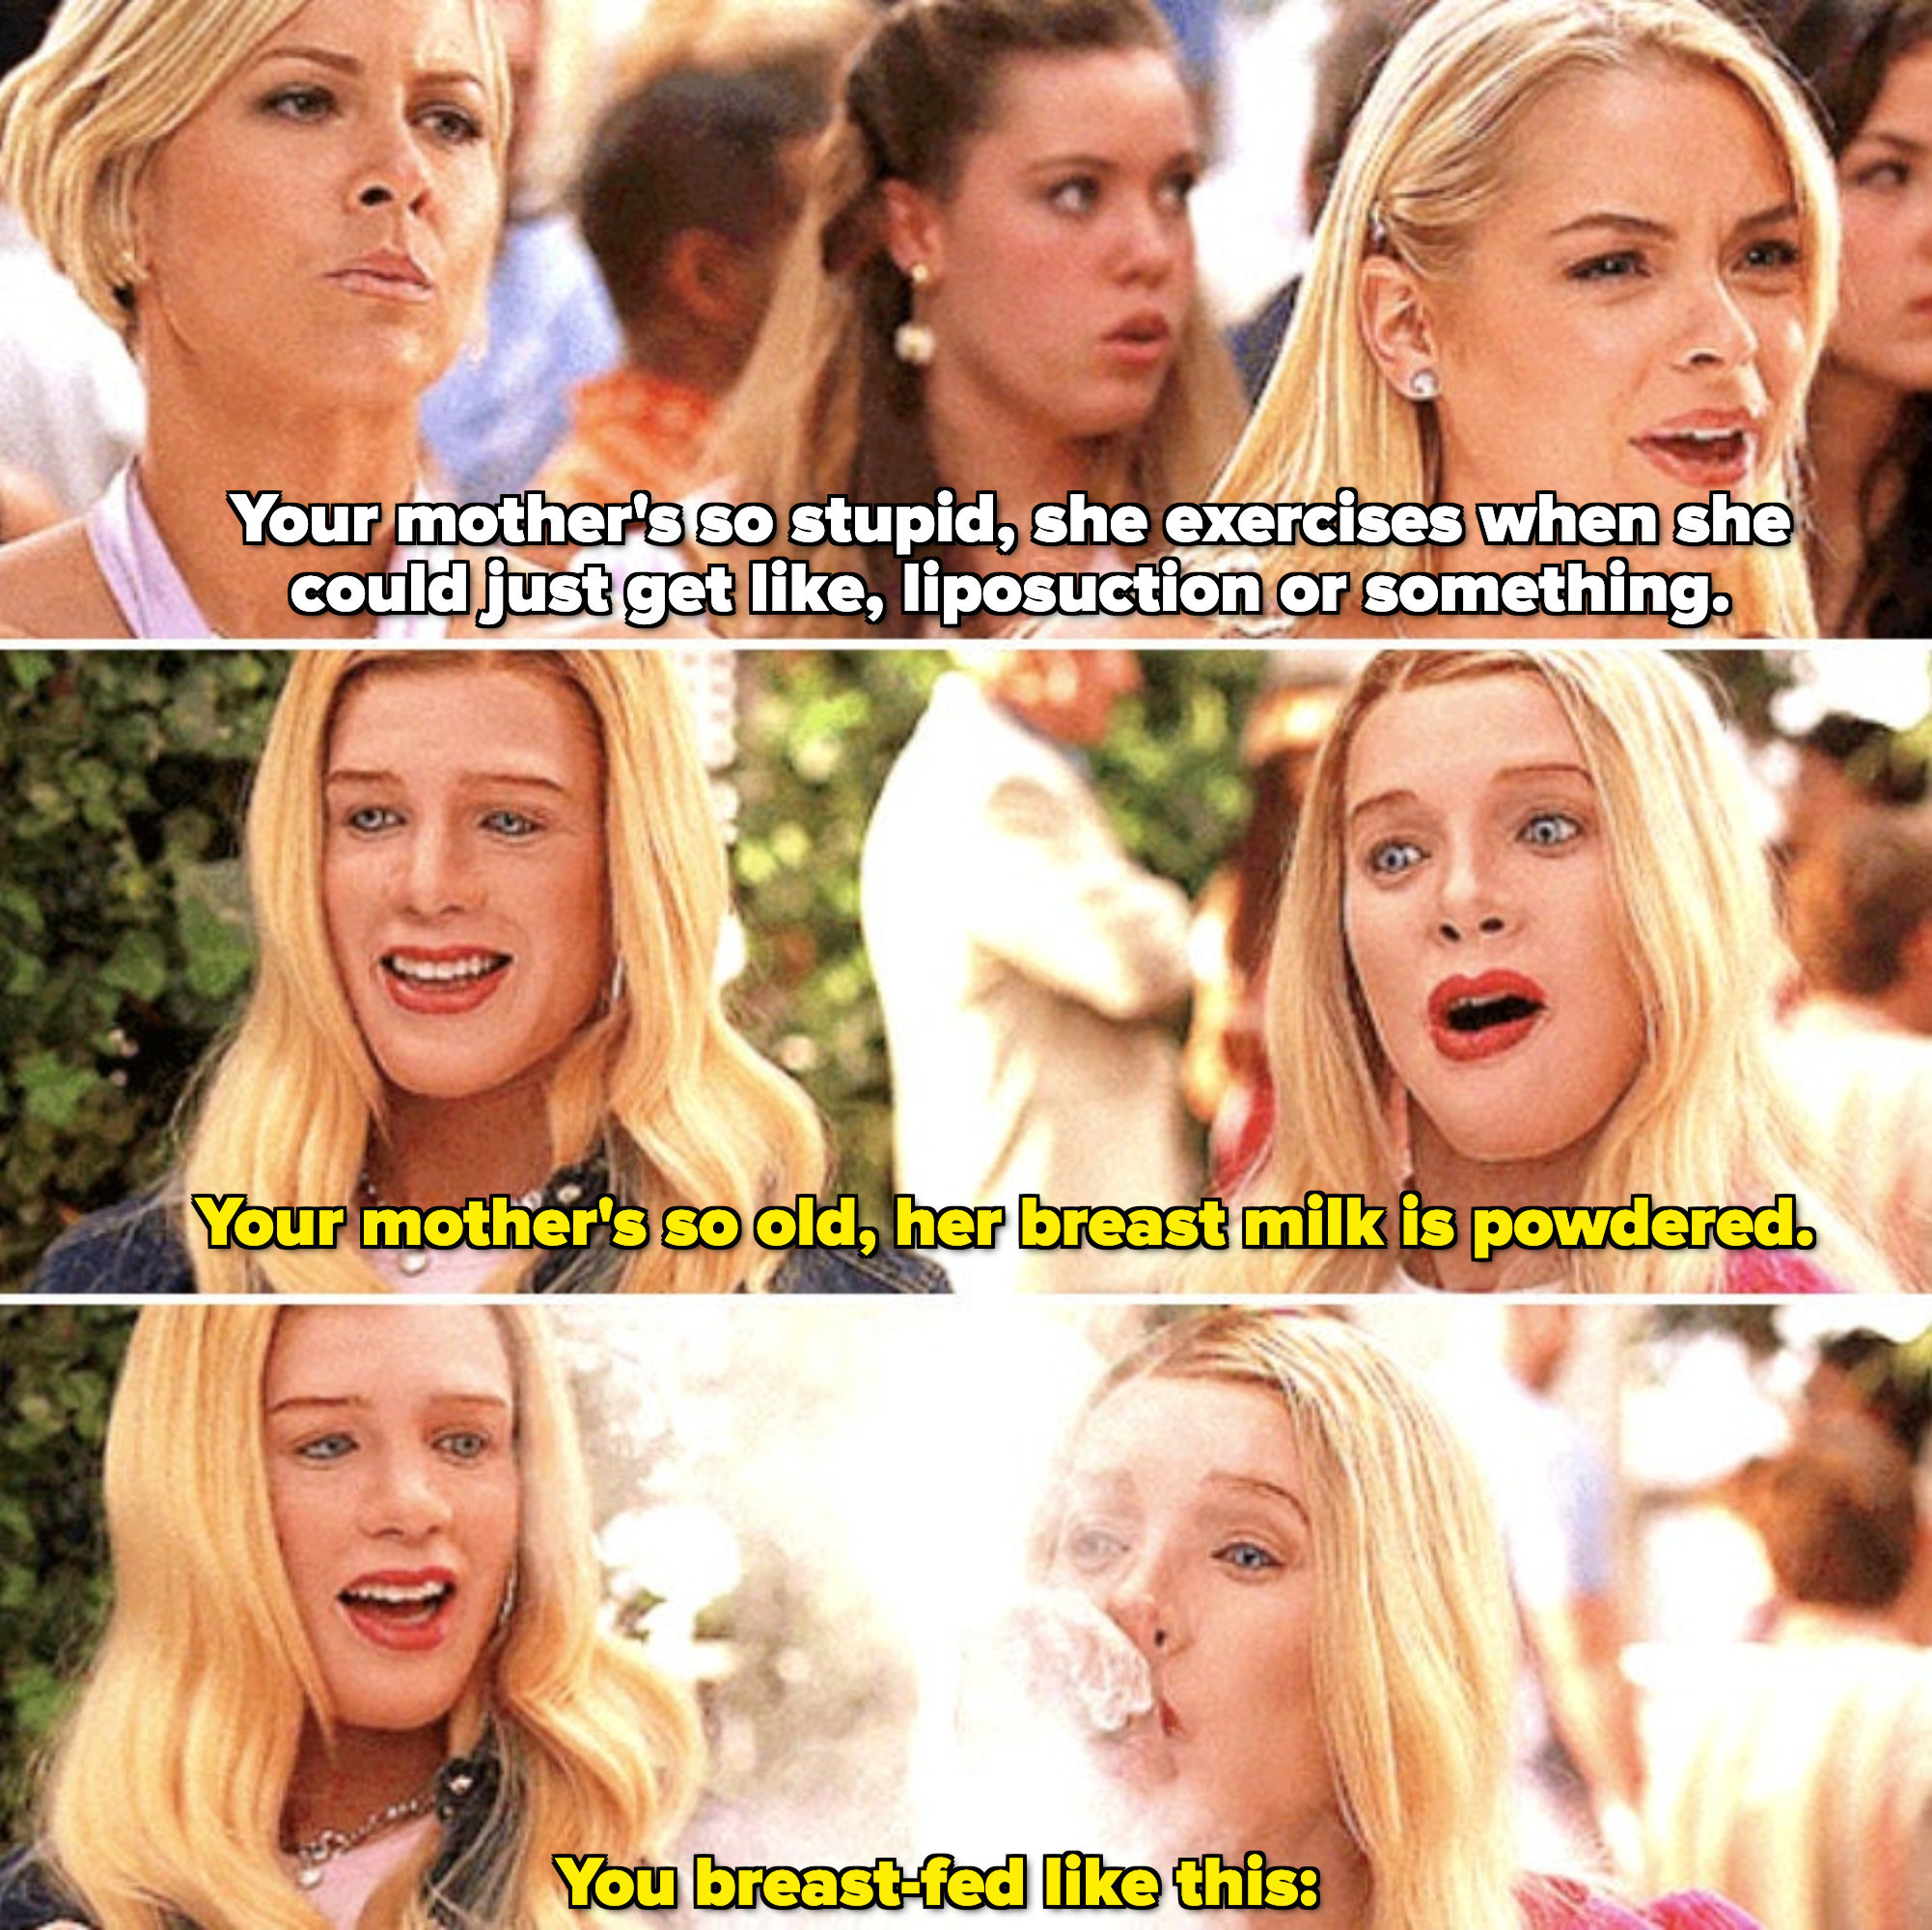 """Marcus and Kevin as Tiffany and Brittany insulting Heather and Megan by saying: """"Your mother's so old, her breast milk is powdered"""""""